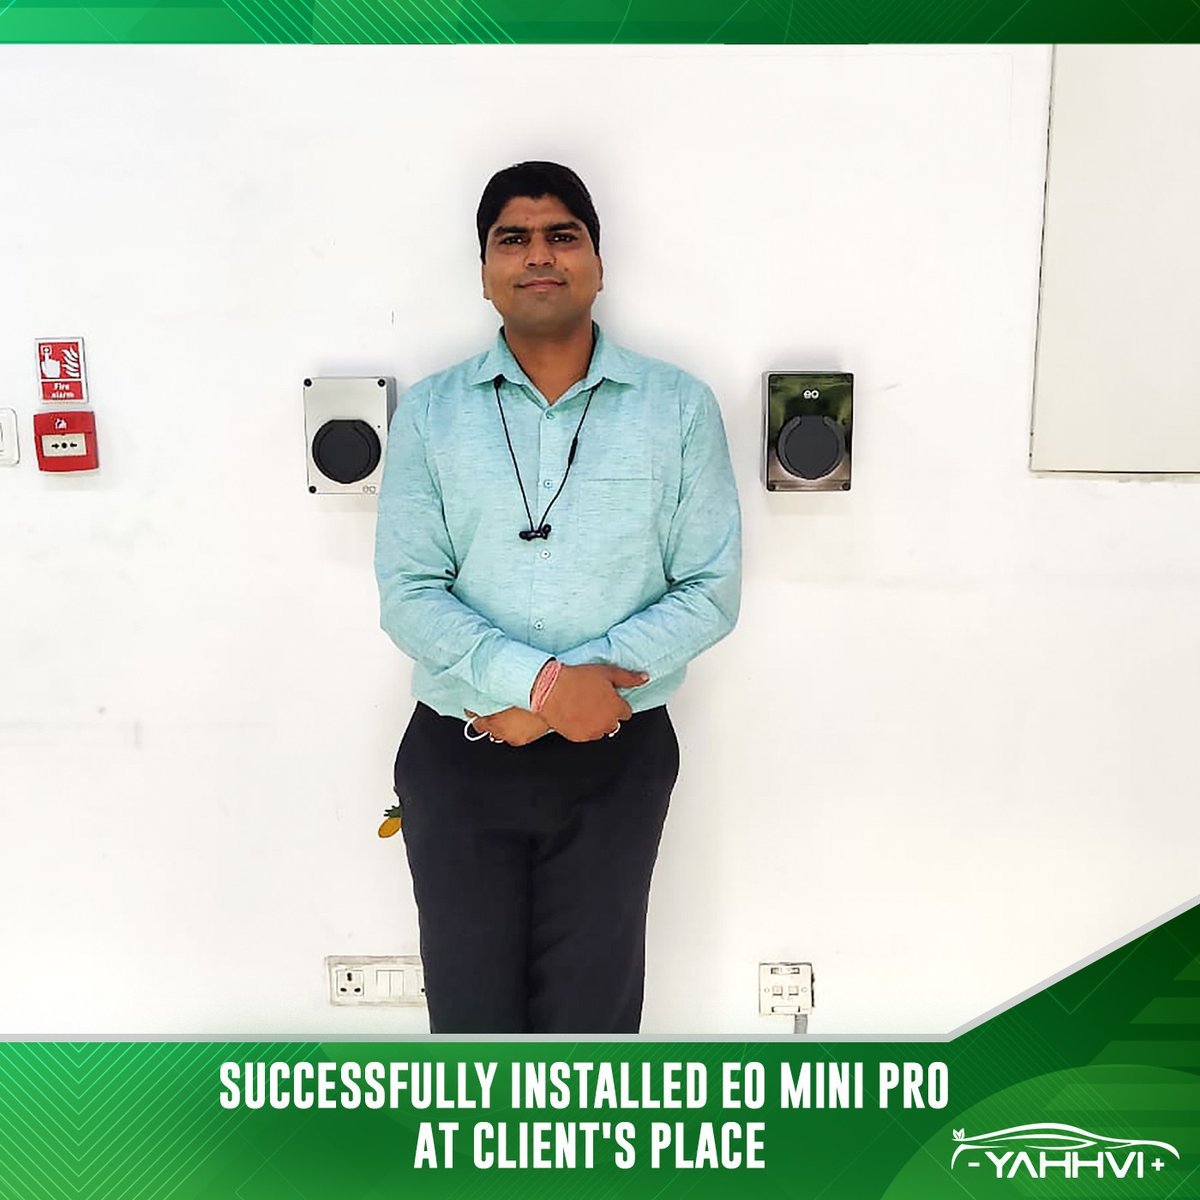 EO Mini Pro successfully installed at the client's place.  .  .  Follow for more details. #happyclients #electricvehiclecharger #evchargingstations #evcharging #driveelectric #electricvehiclecharging #eochargerpic.twitter.com/sWzKTHVgyz